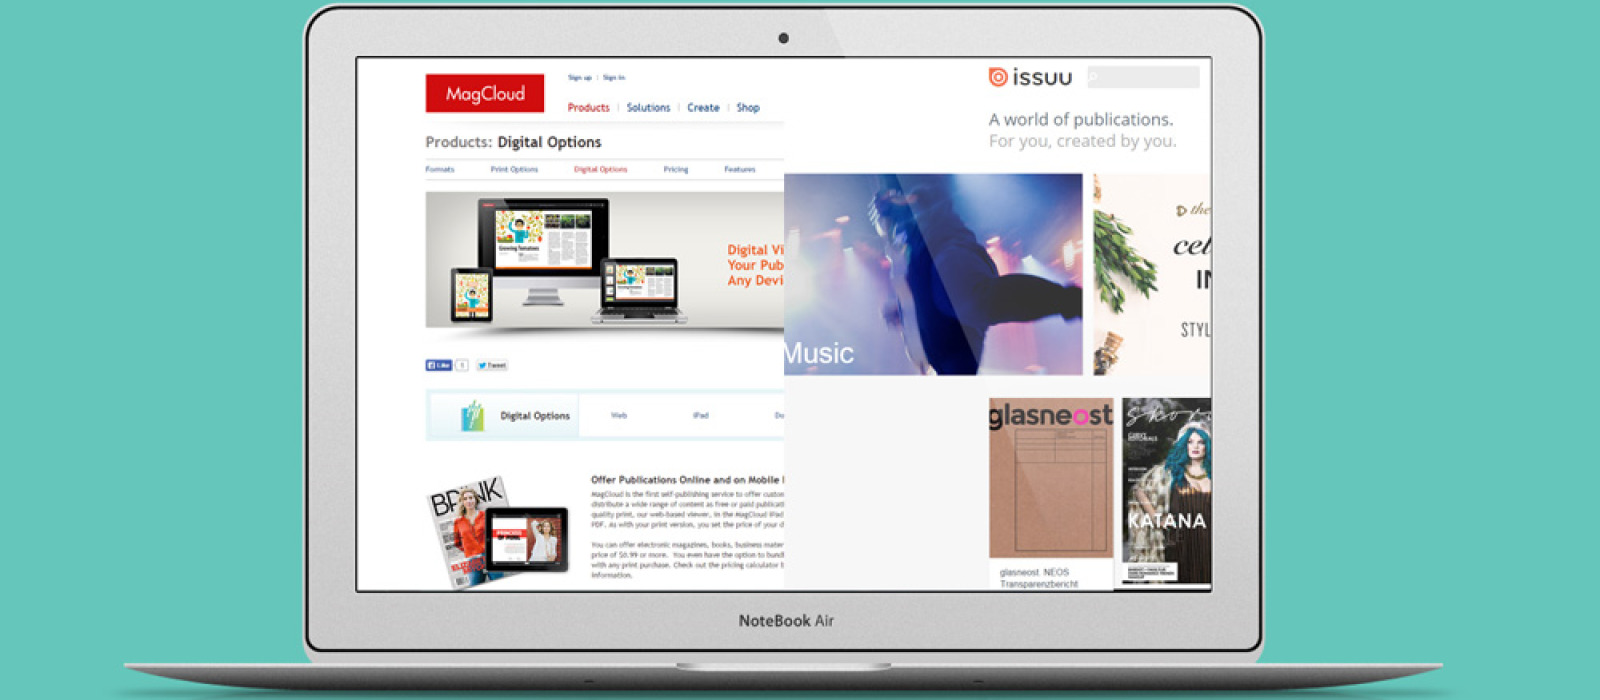 A comparison between Magcloud vs Issuu